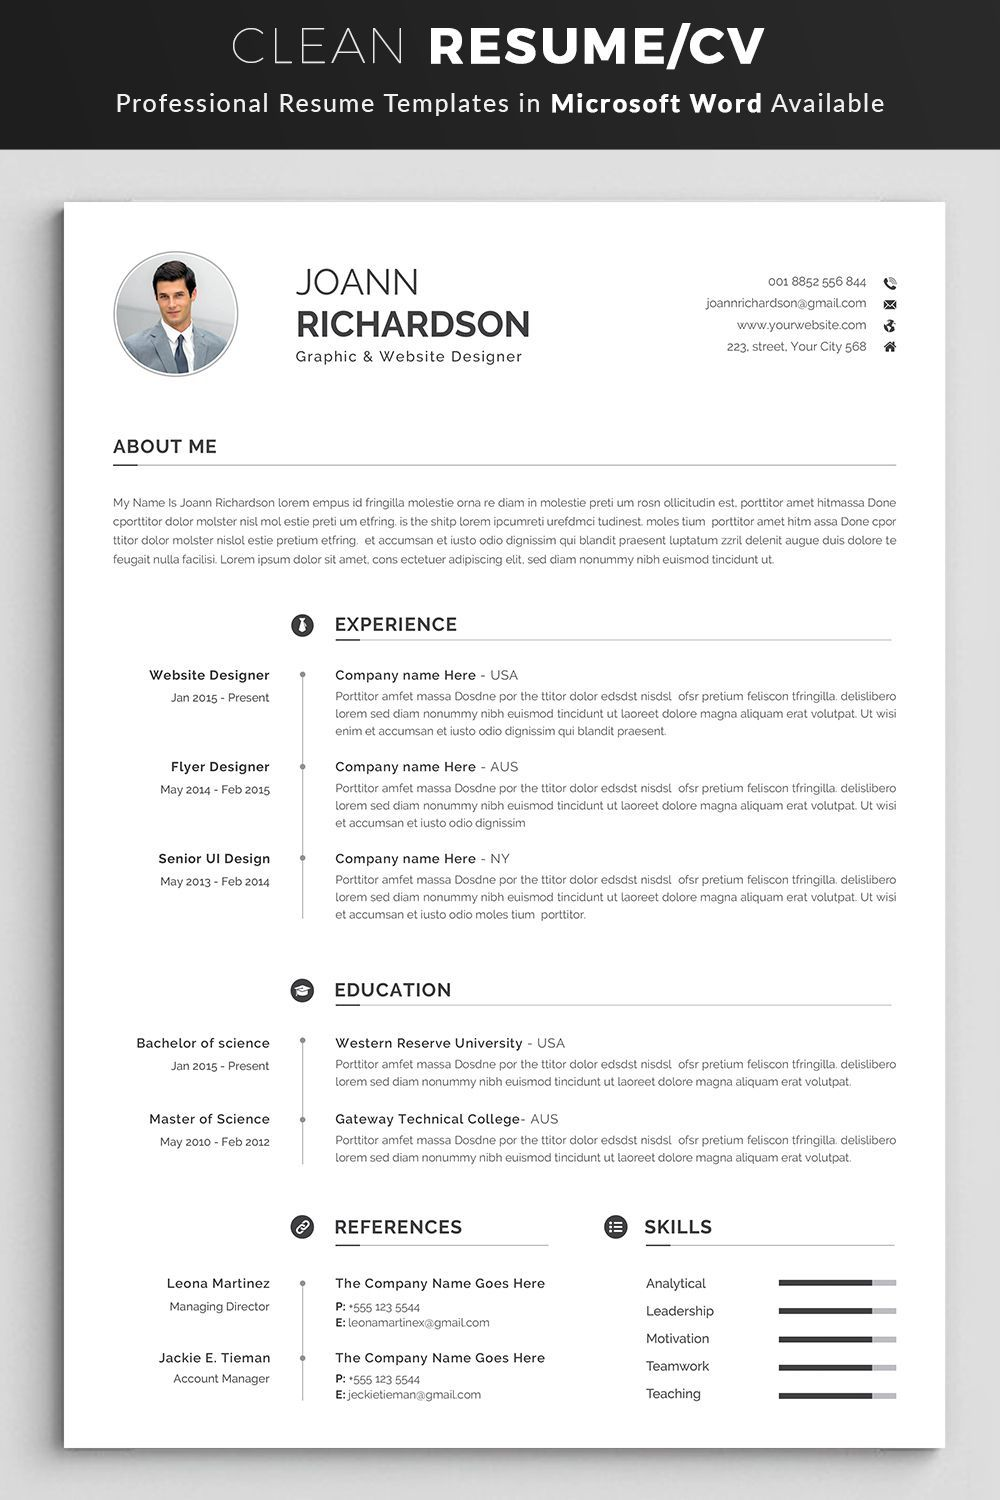 000 Excellent Make A Resume Template In Word High Def  How To 2010 2007Full